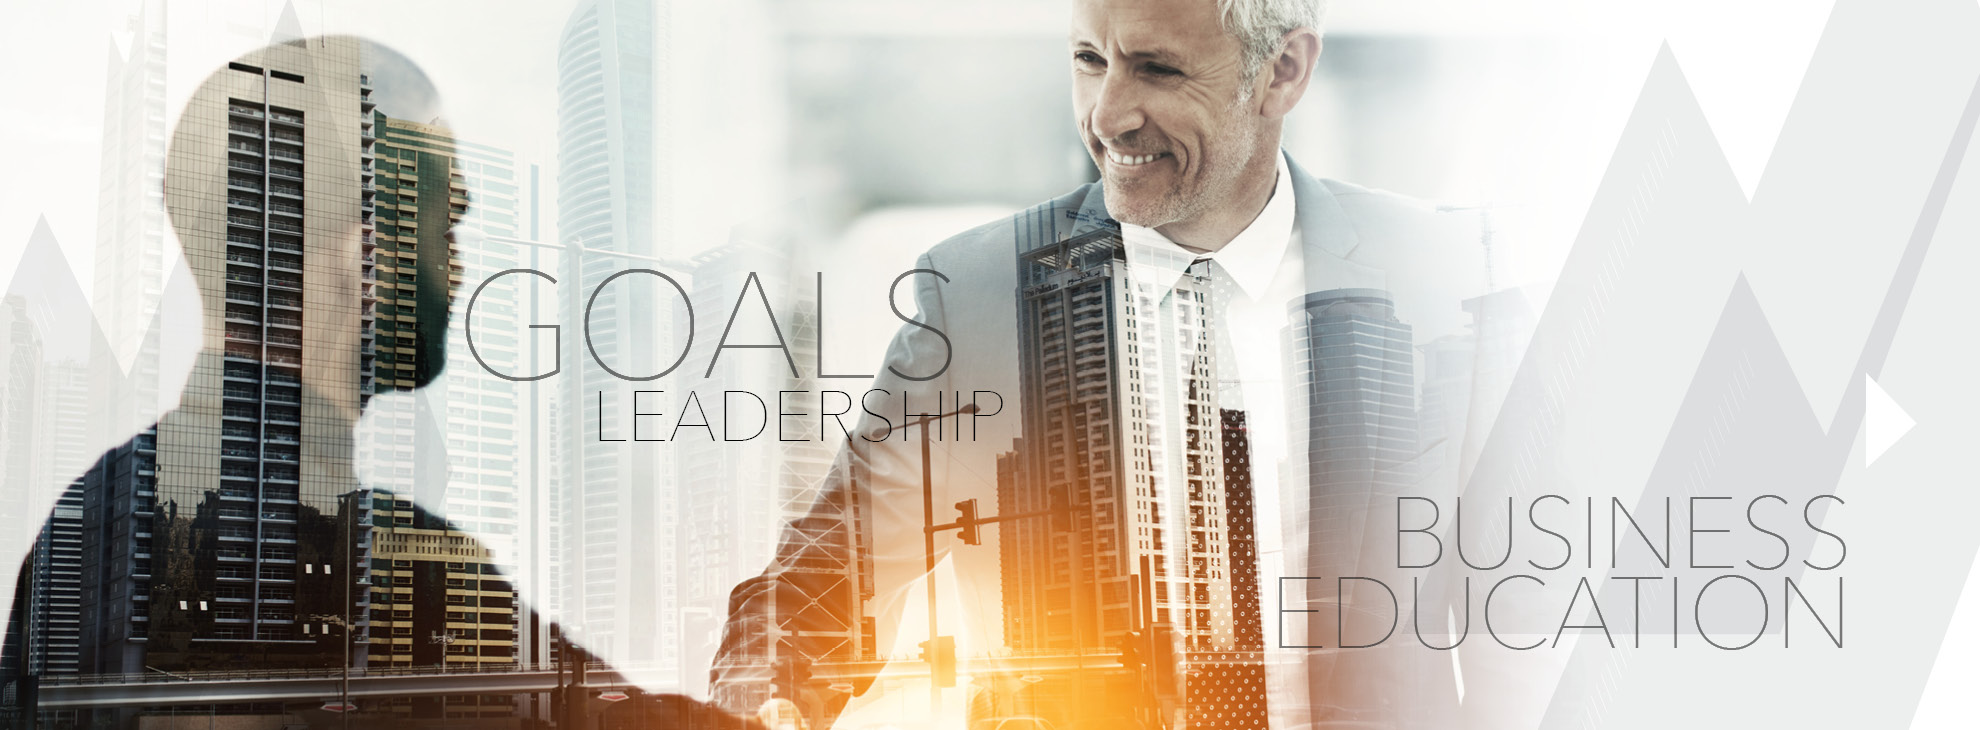 Goals Leadership, Business Education